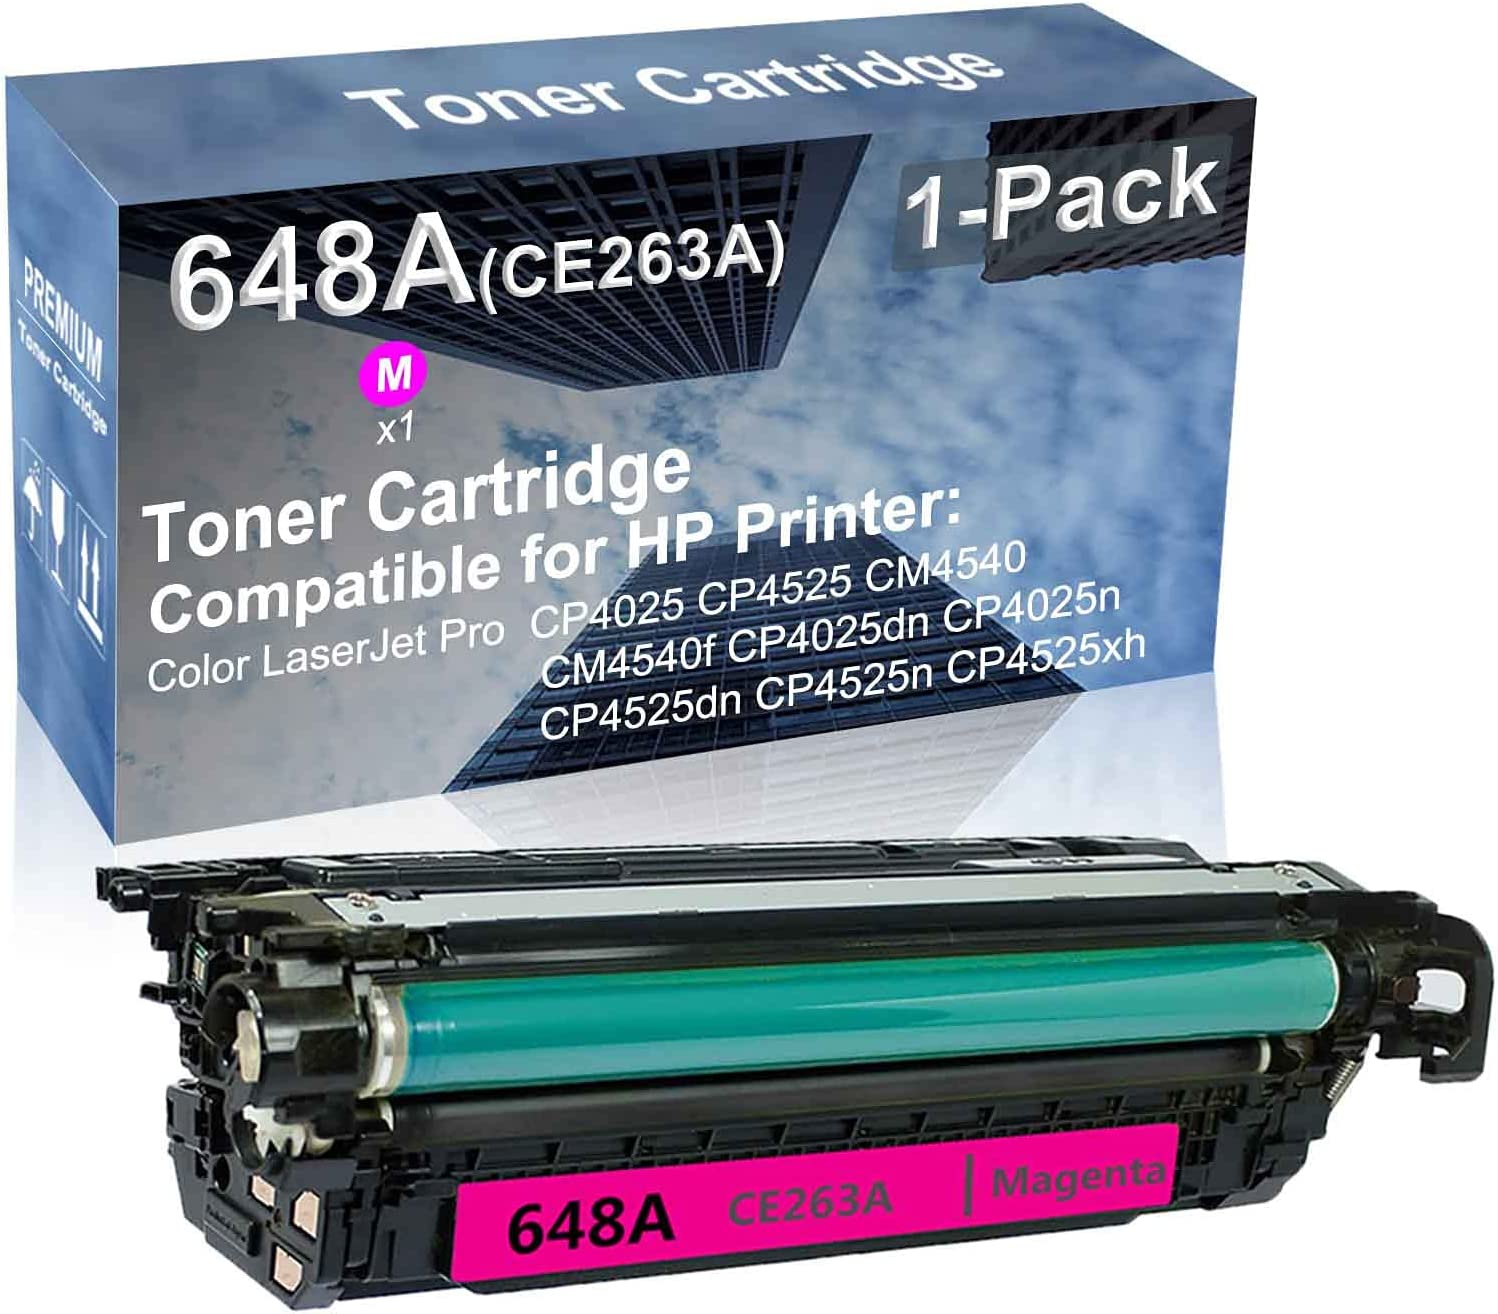 1-Pack (Magenta) Compatible High Yield 648A (CE263A) Laser Printer Toner Cartridge use for HP CP4525dn CP4525n CP4525xh Printer